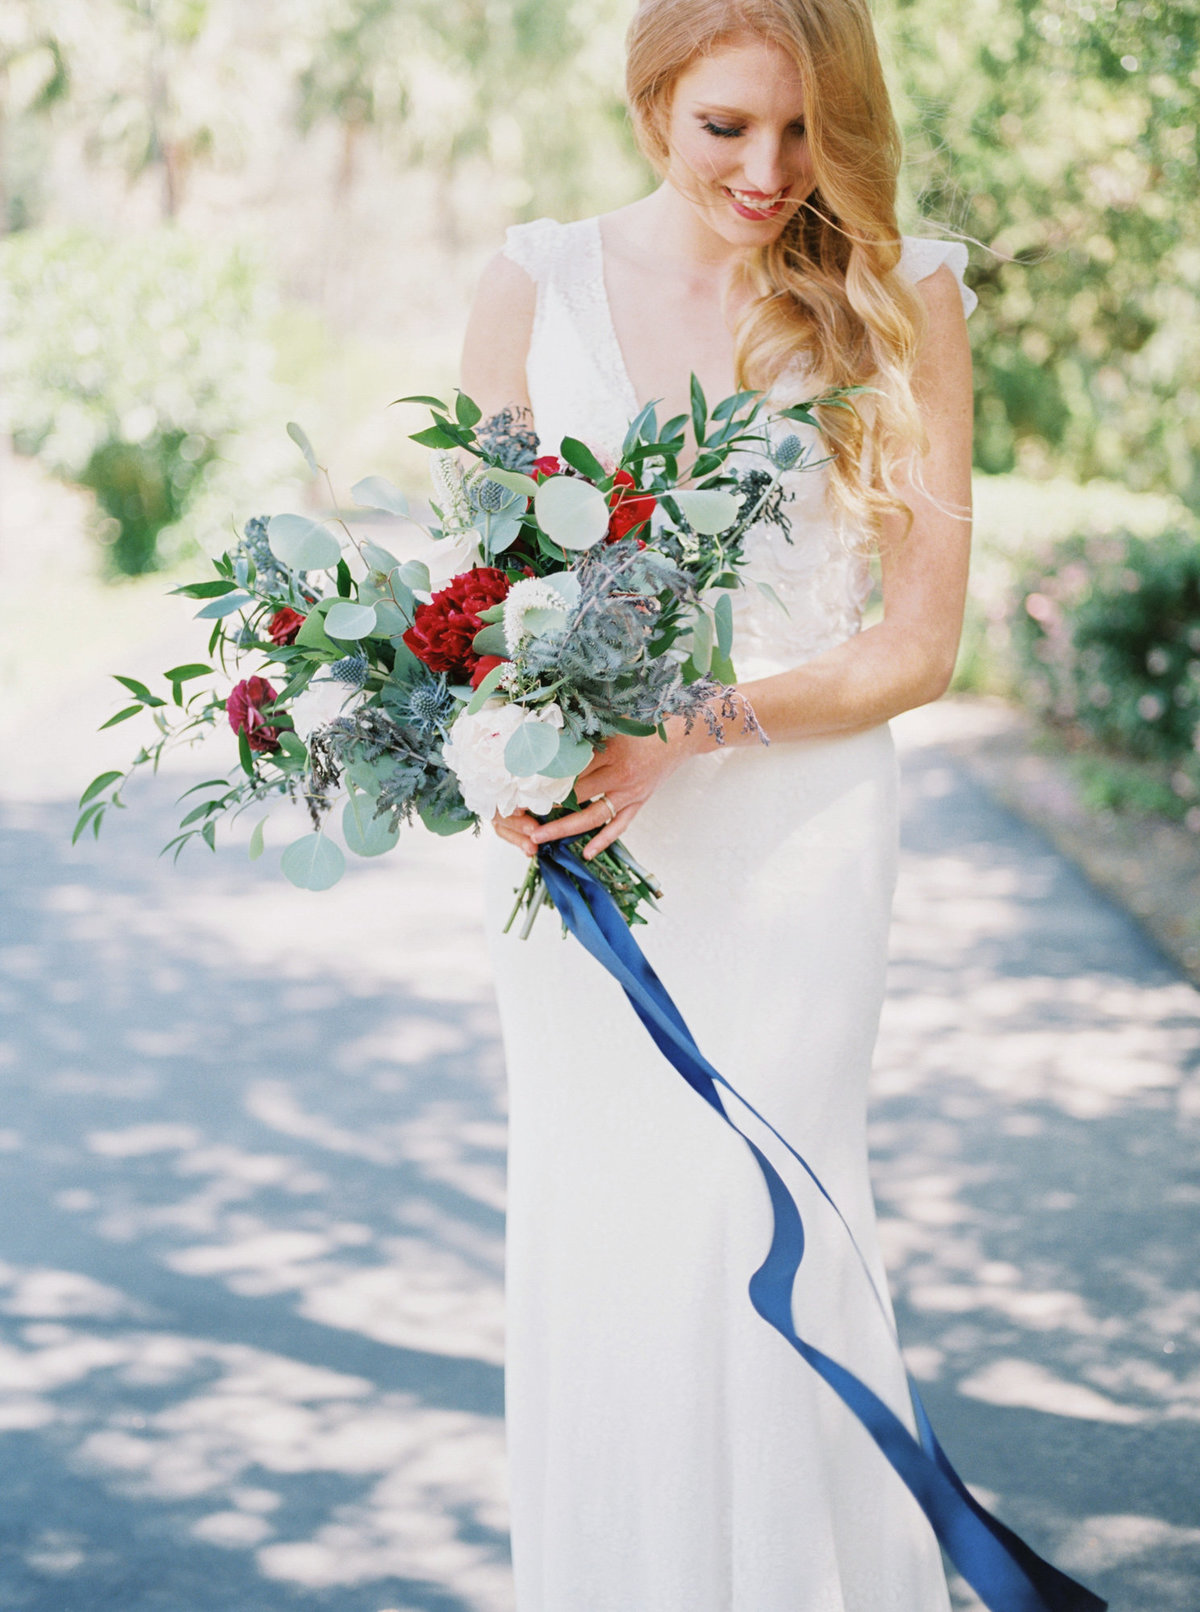 San-Diego-Wedding-Photographer-Los-Willows-Mandy-Ford-Photography-28